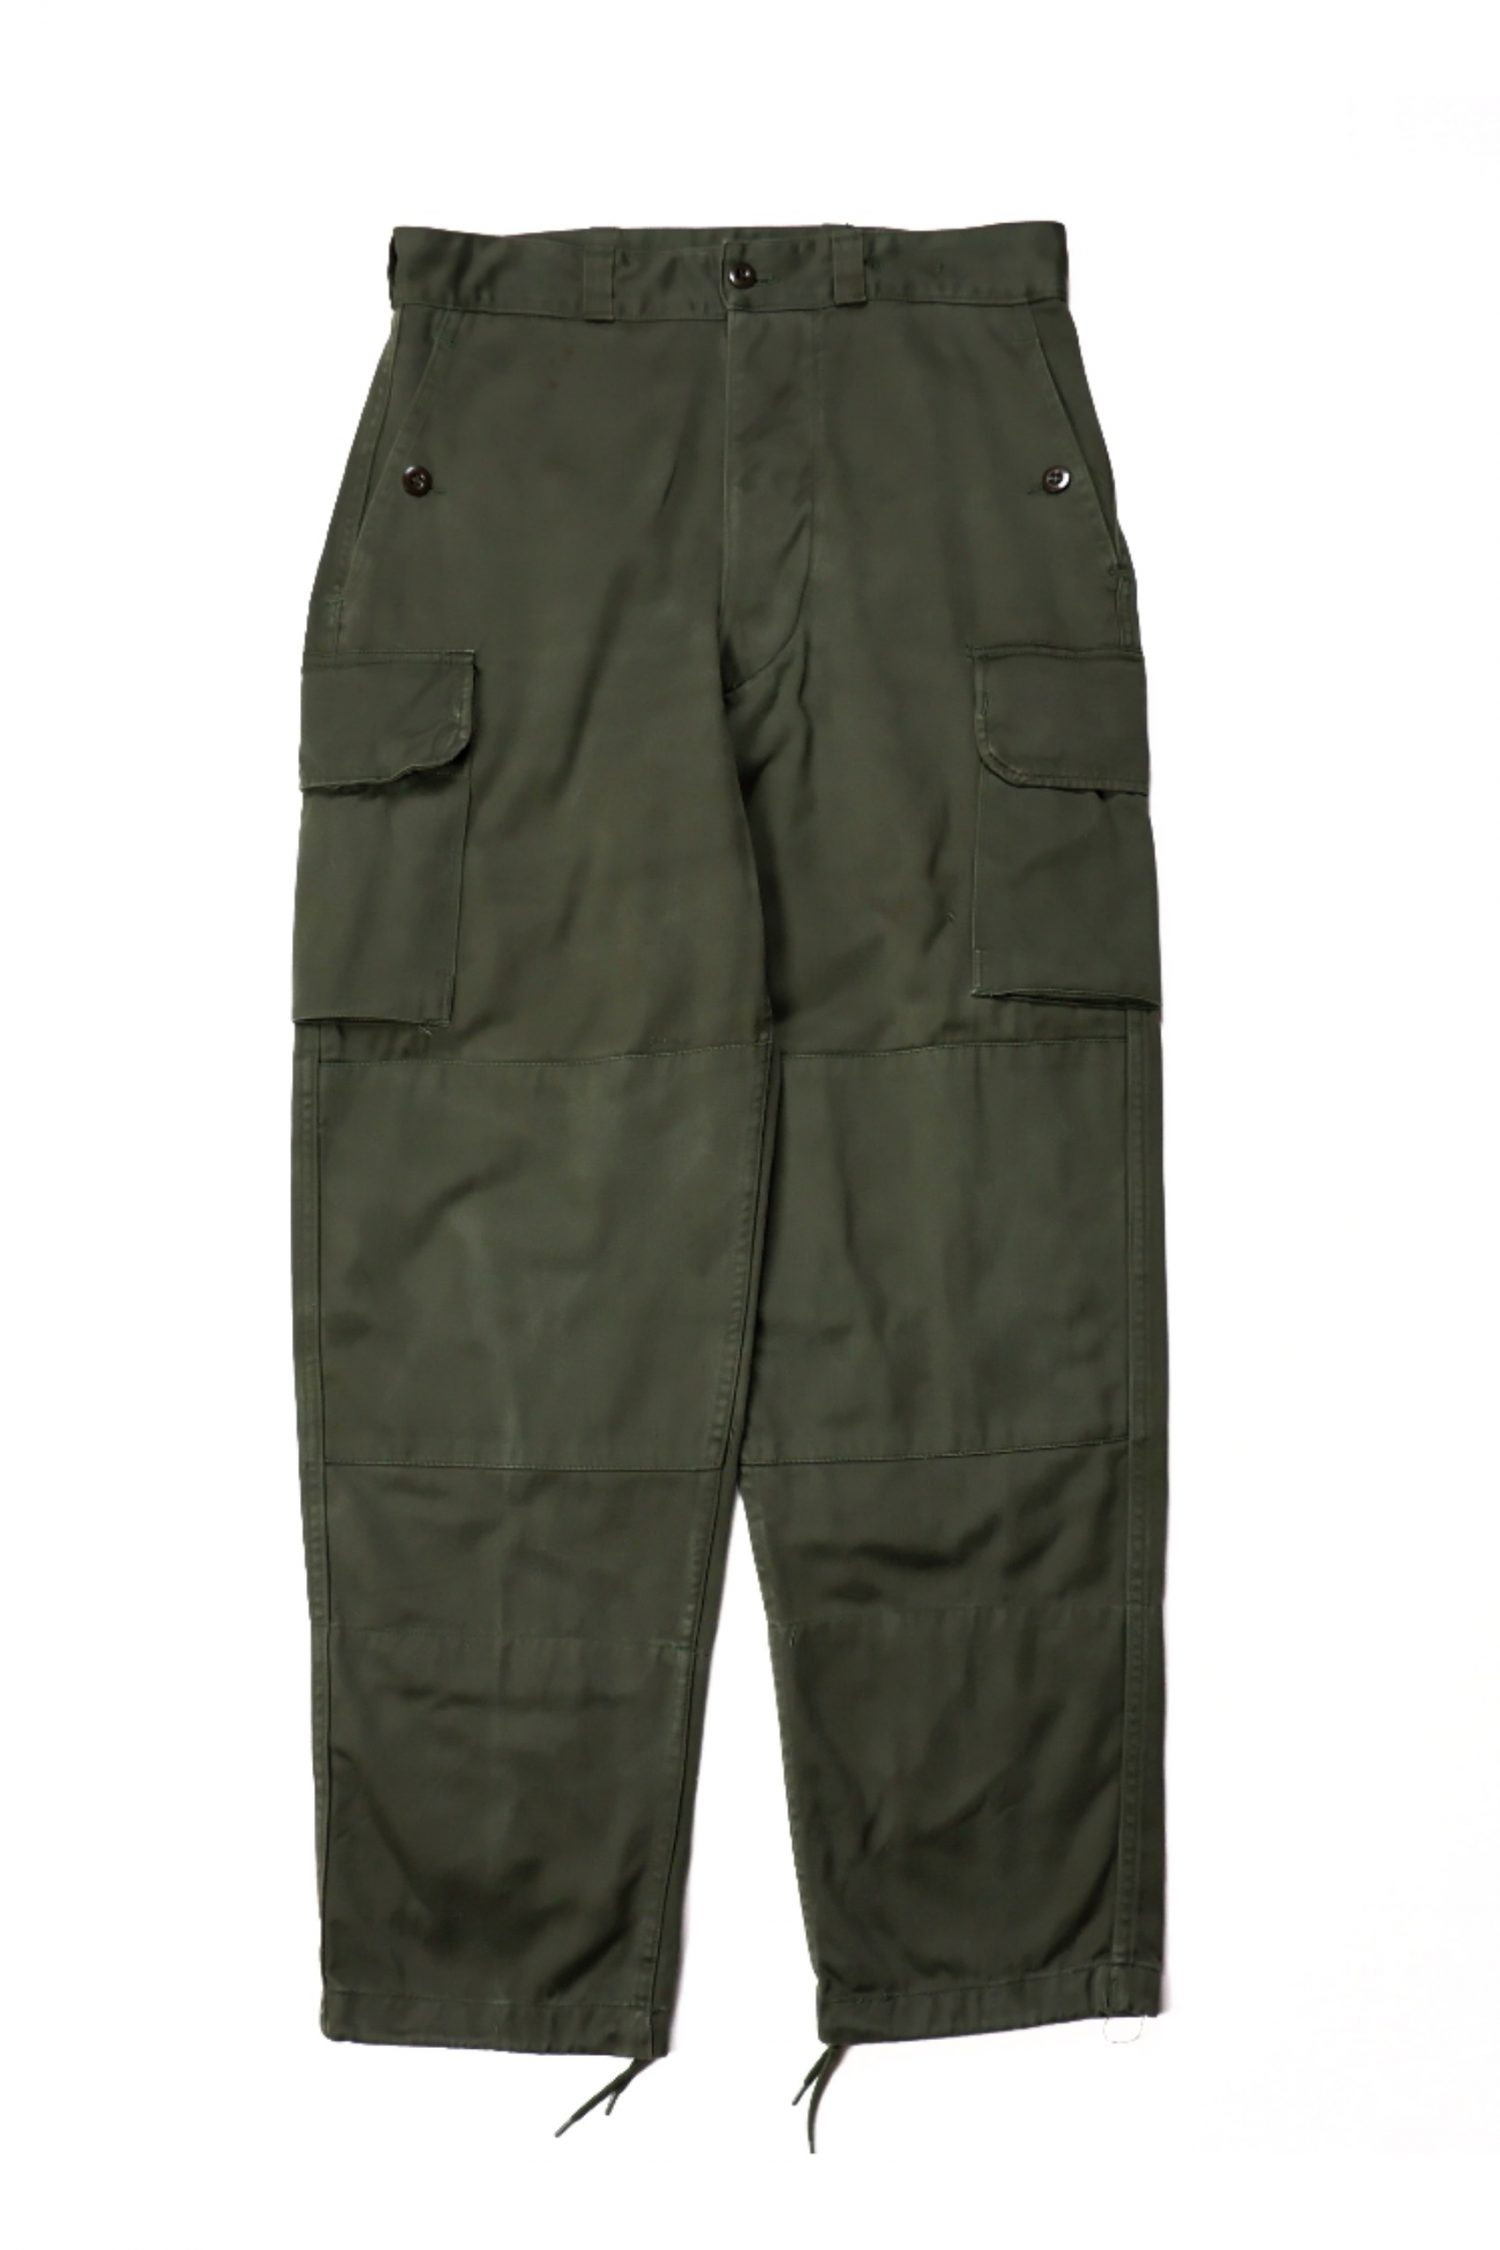 French Military M-64 Pants